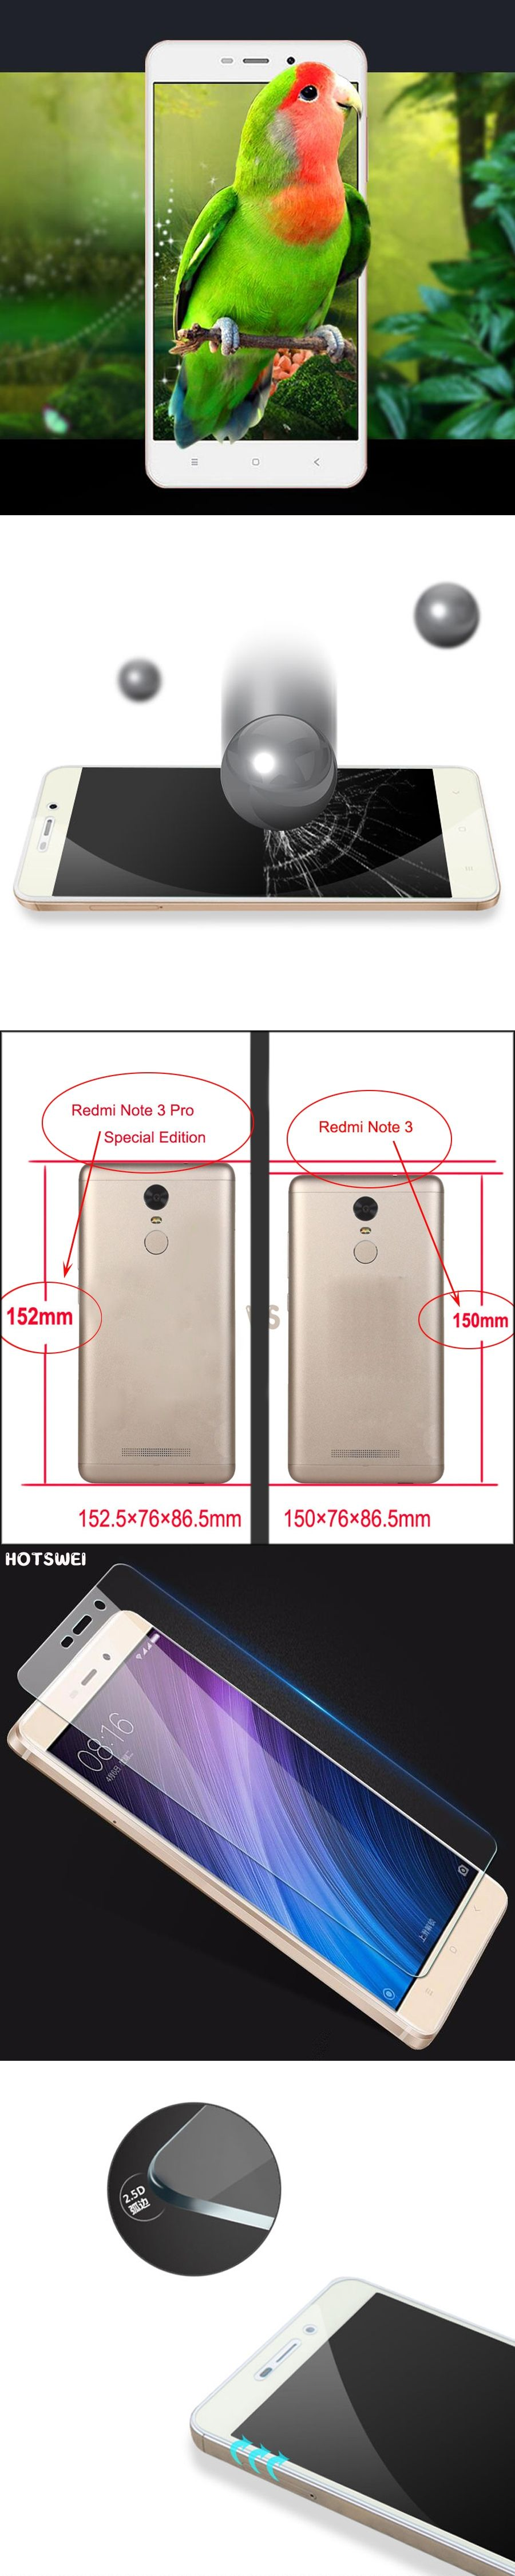 0 26mm 9H Tempered Glass for Xiaomi Redmi 3 3s pro Mi 5 Mi4 Mi4C 4i